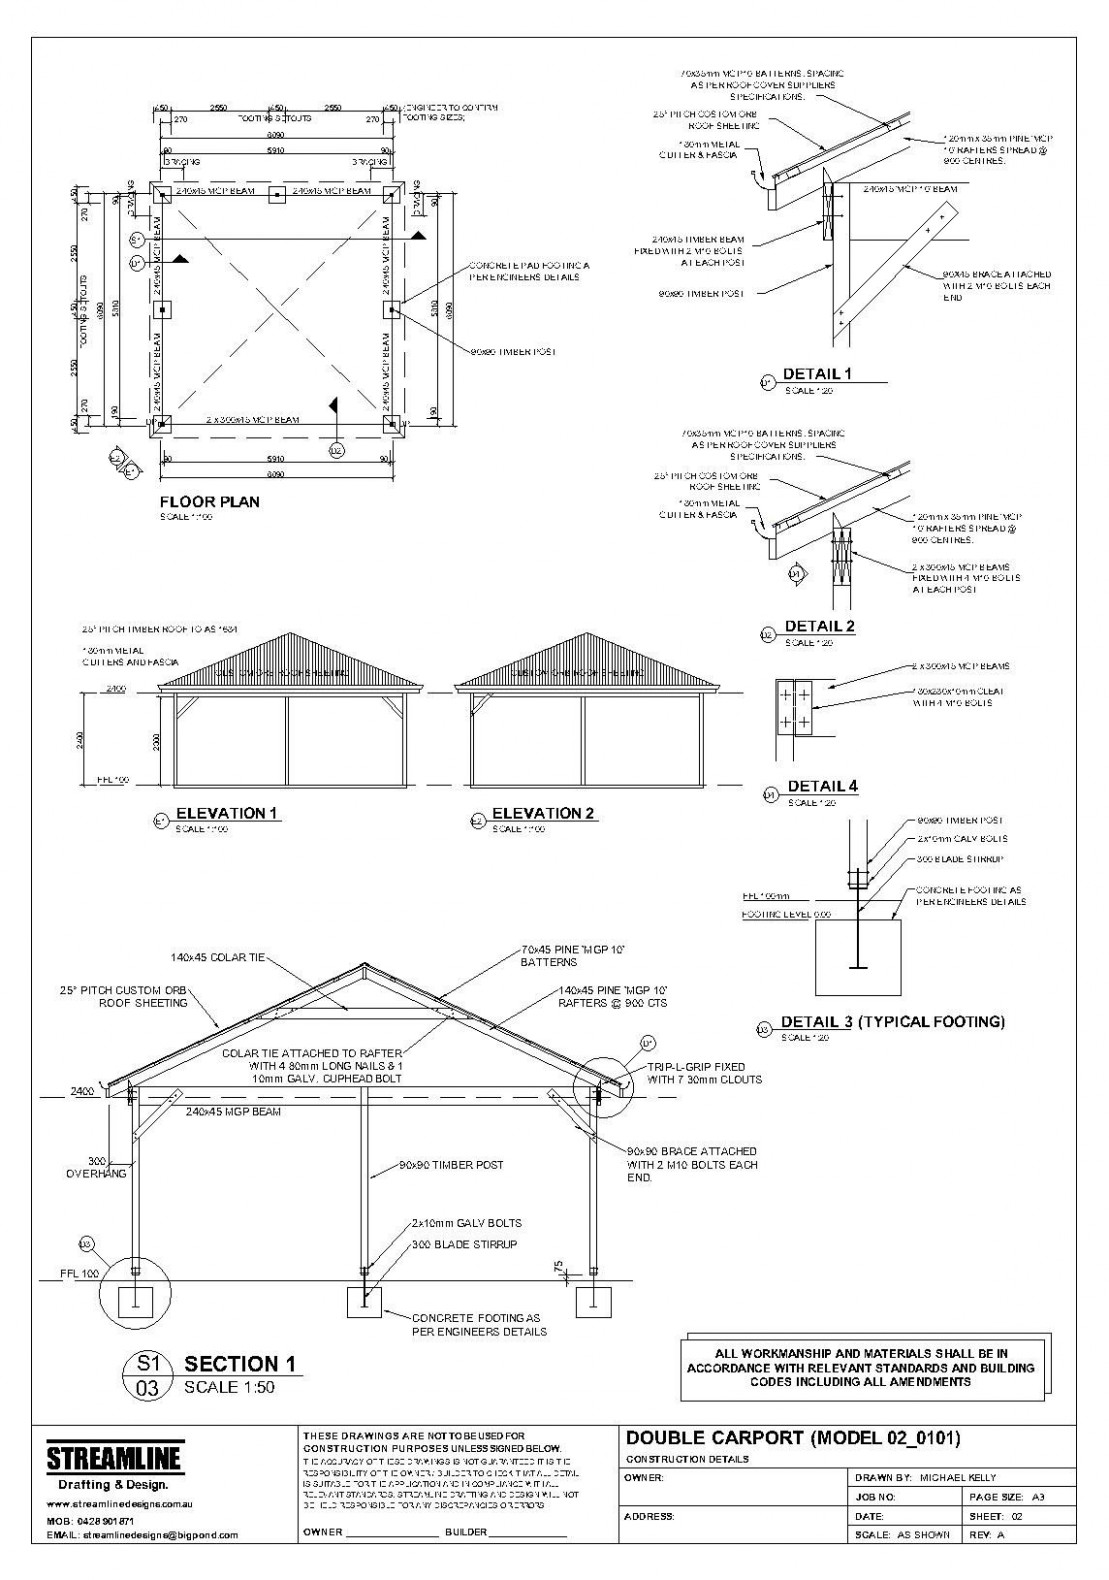 Download Free Carport Plans Building | F Appetizers In 7 ..